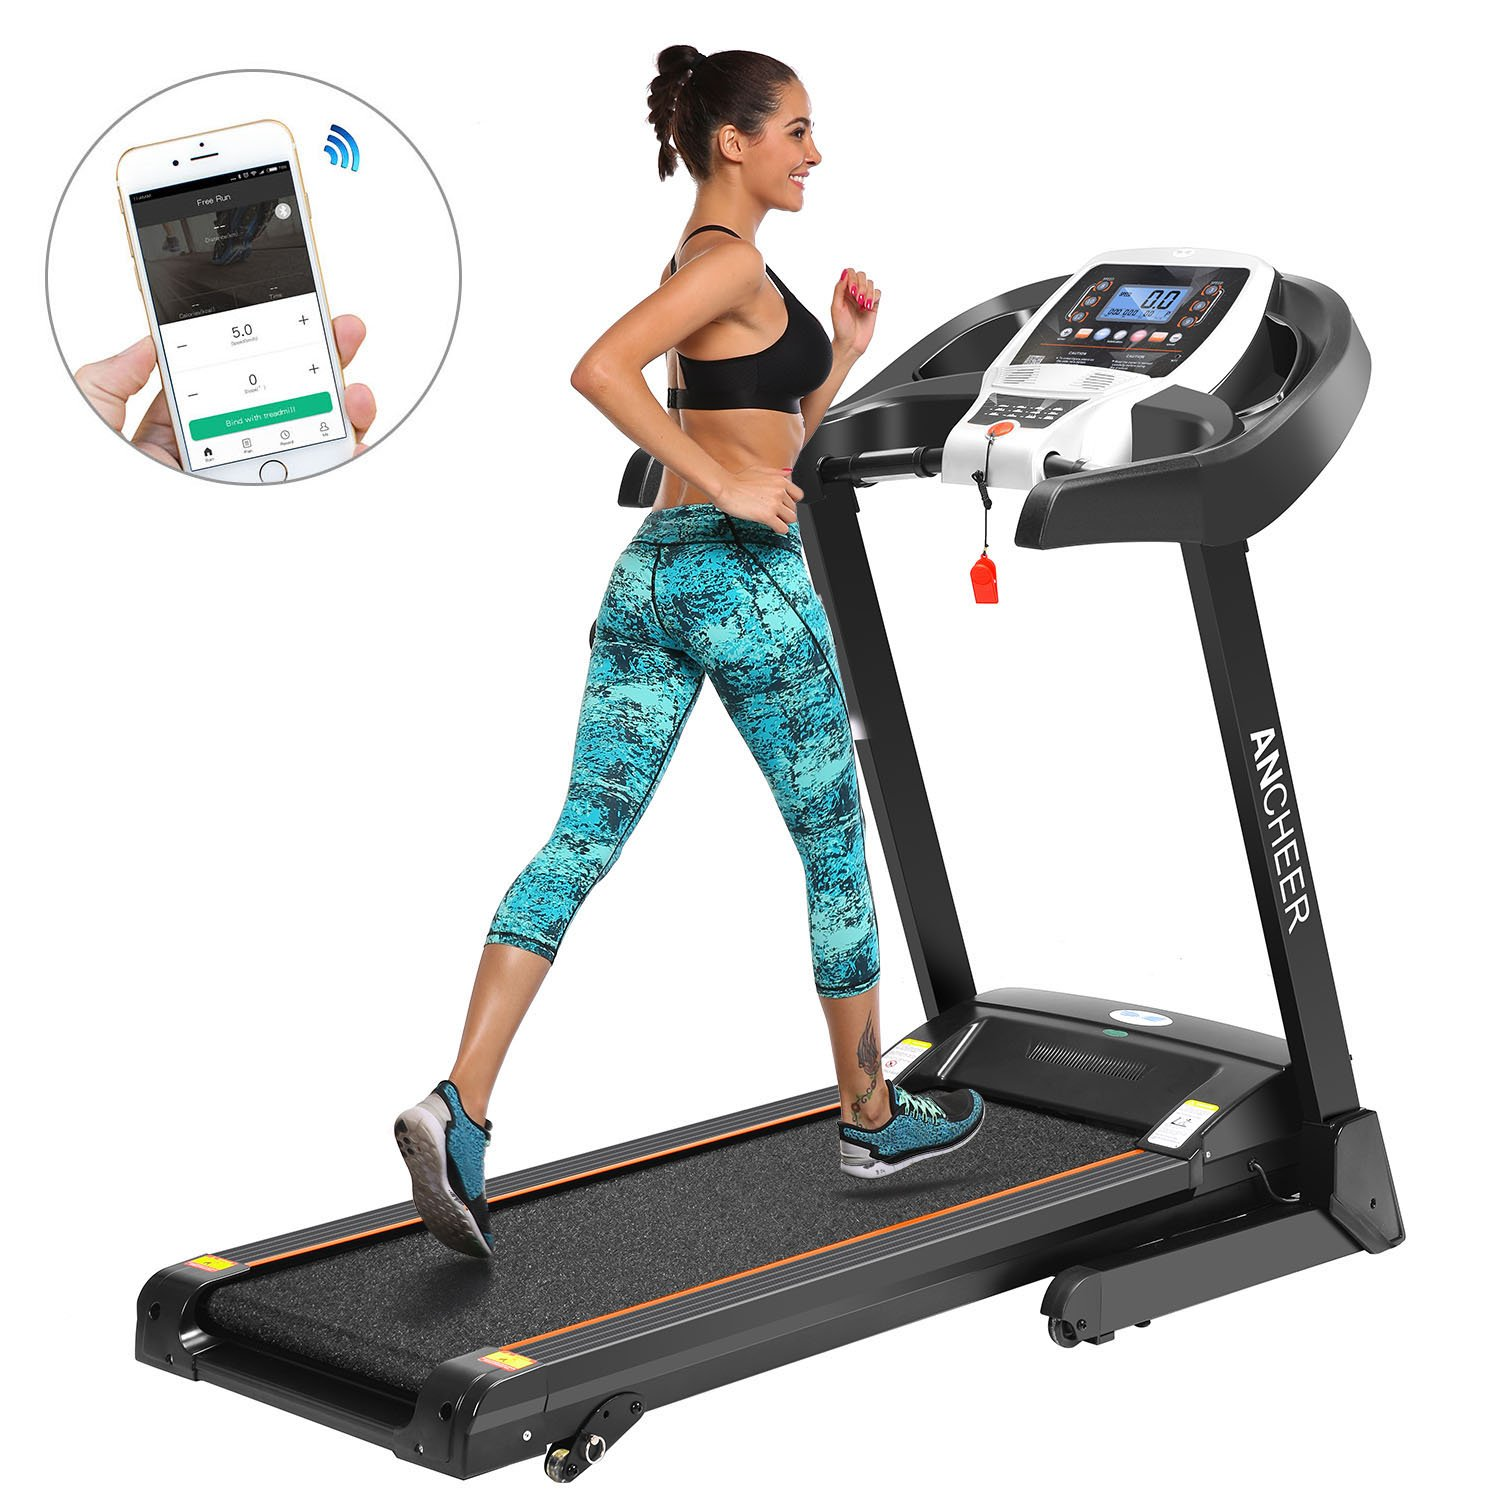 ANCHEER Treadmill, APP Control Electric Folding Treadmills (Black_2) by ANCHEER (Image #1)